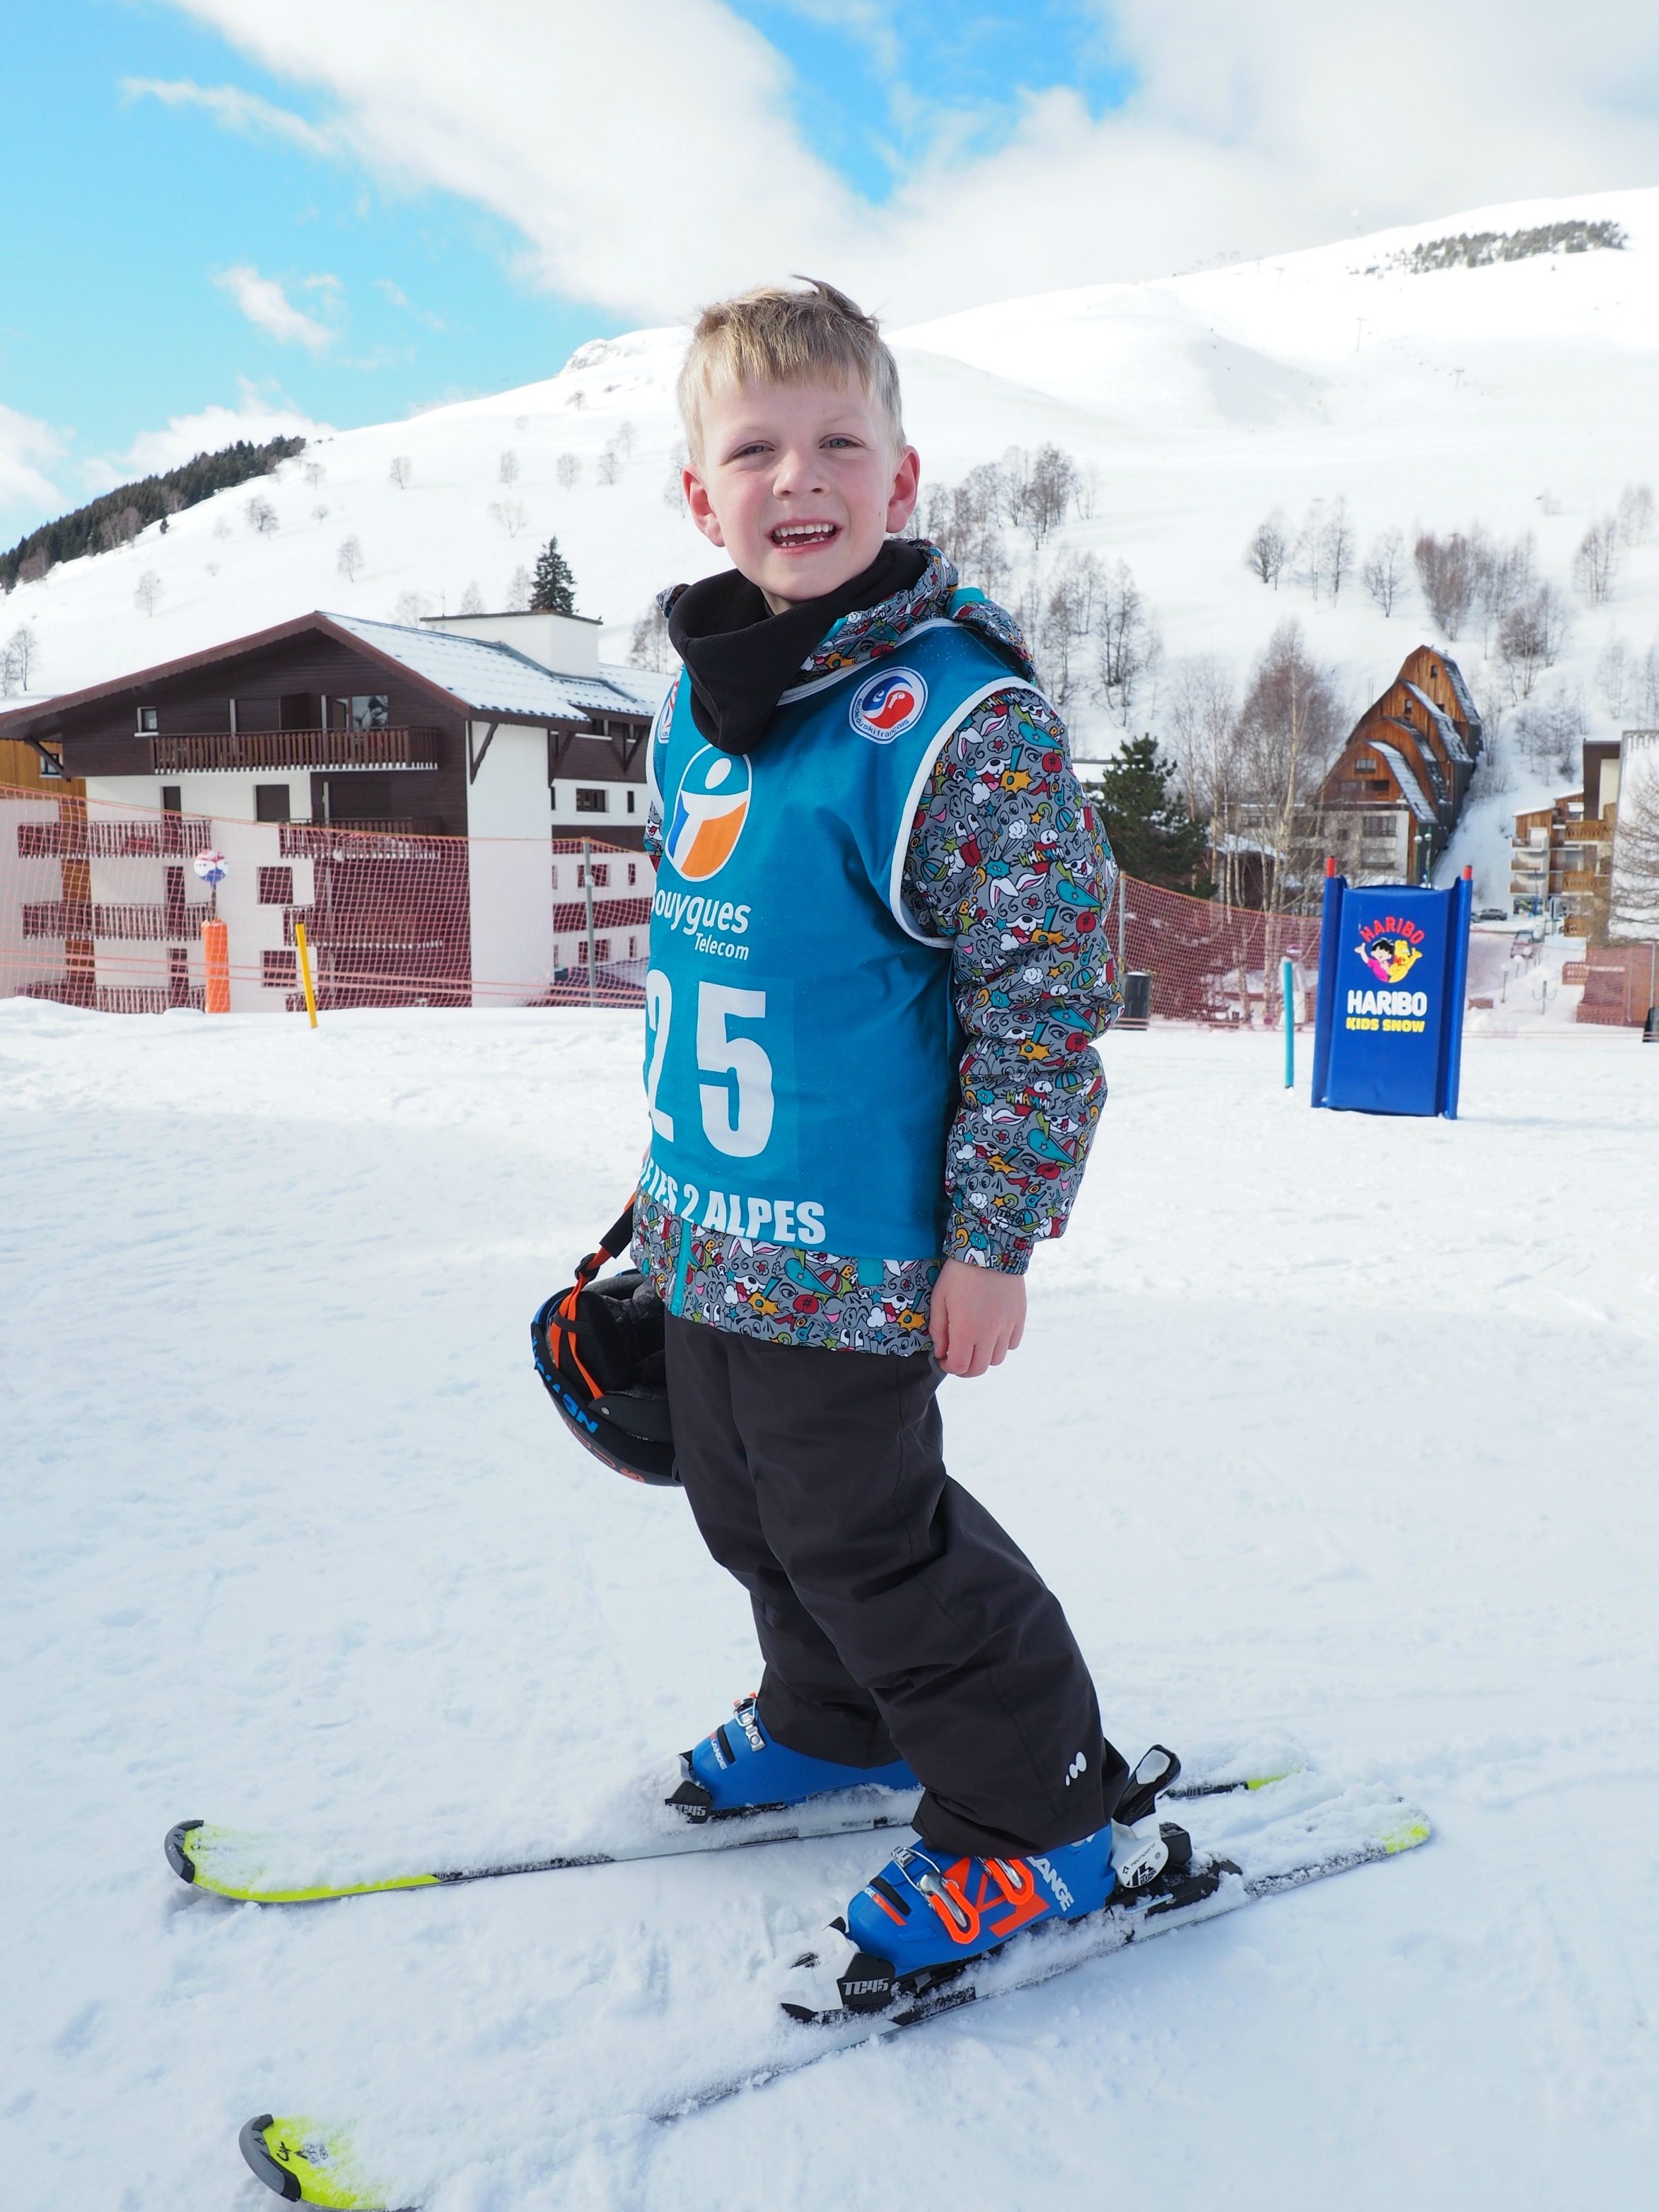 Our Family Ski Holiday to Les Deux Alpes Hotel Berangere with Mark Warner – Part 1